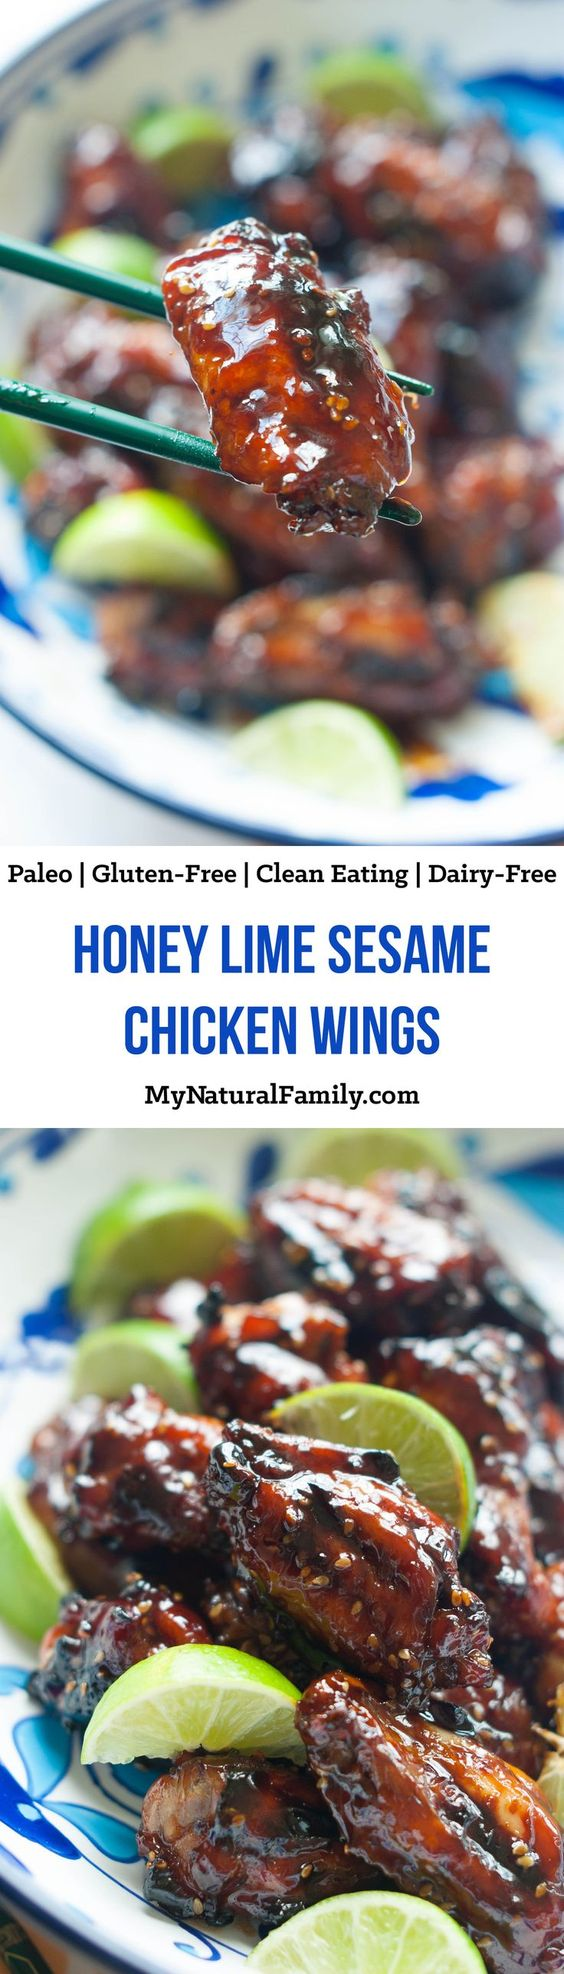 paleo honey lime sesame chicken wings pin